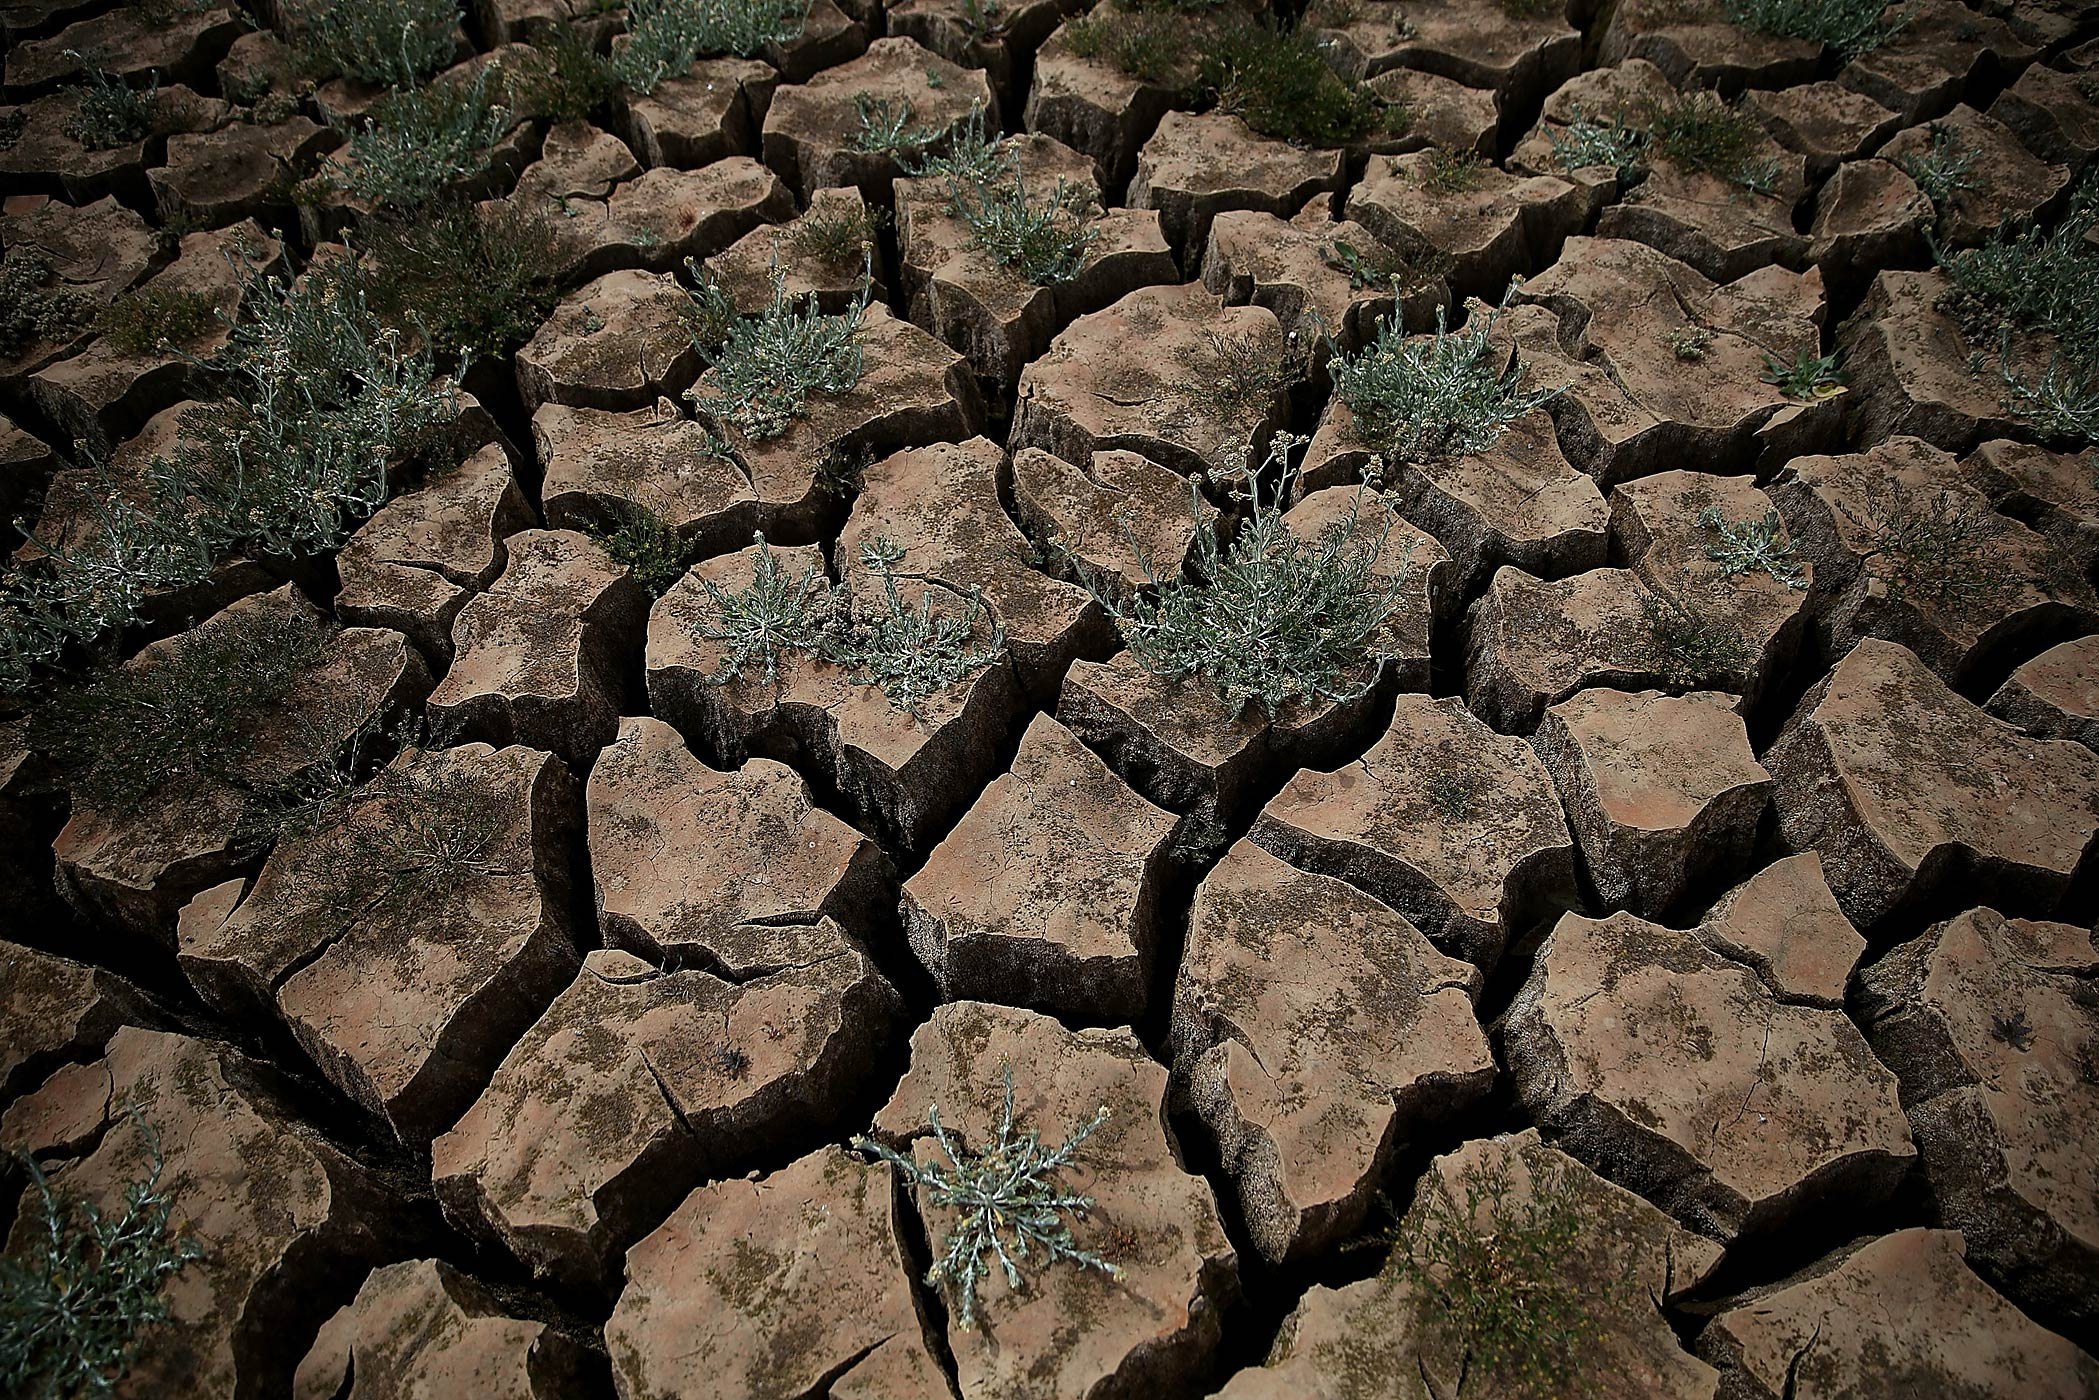 Weeds grow in dry cracked earth that used to be the bottom of Lake McClure on March 24, 2015 in La Grange, Calif.